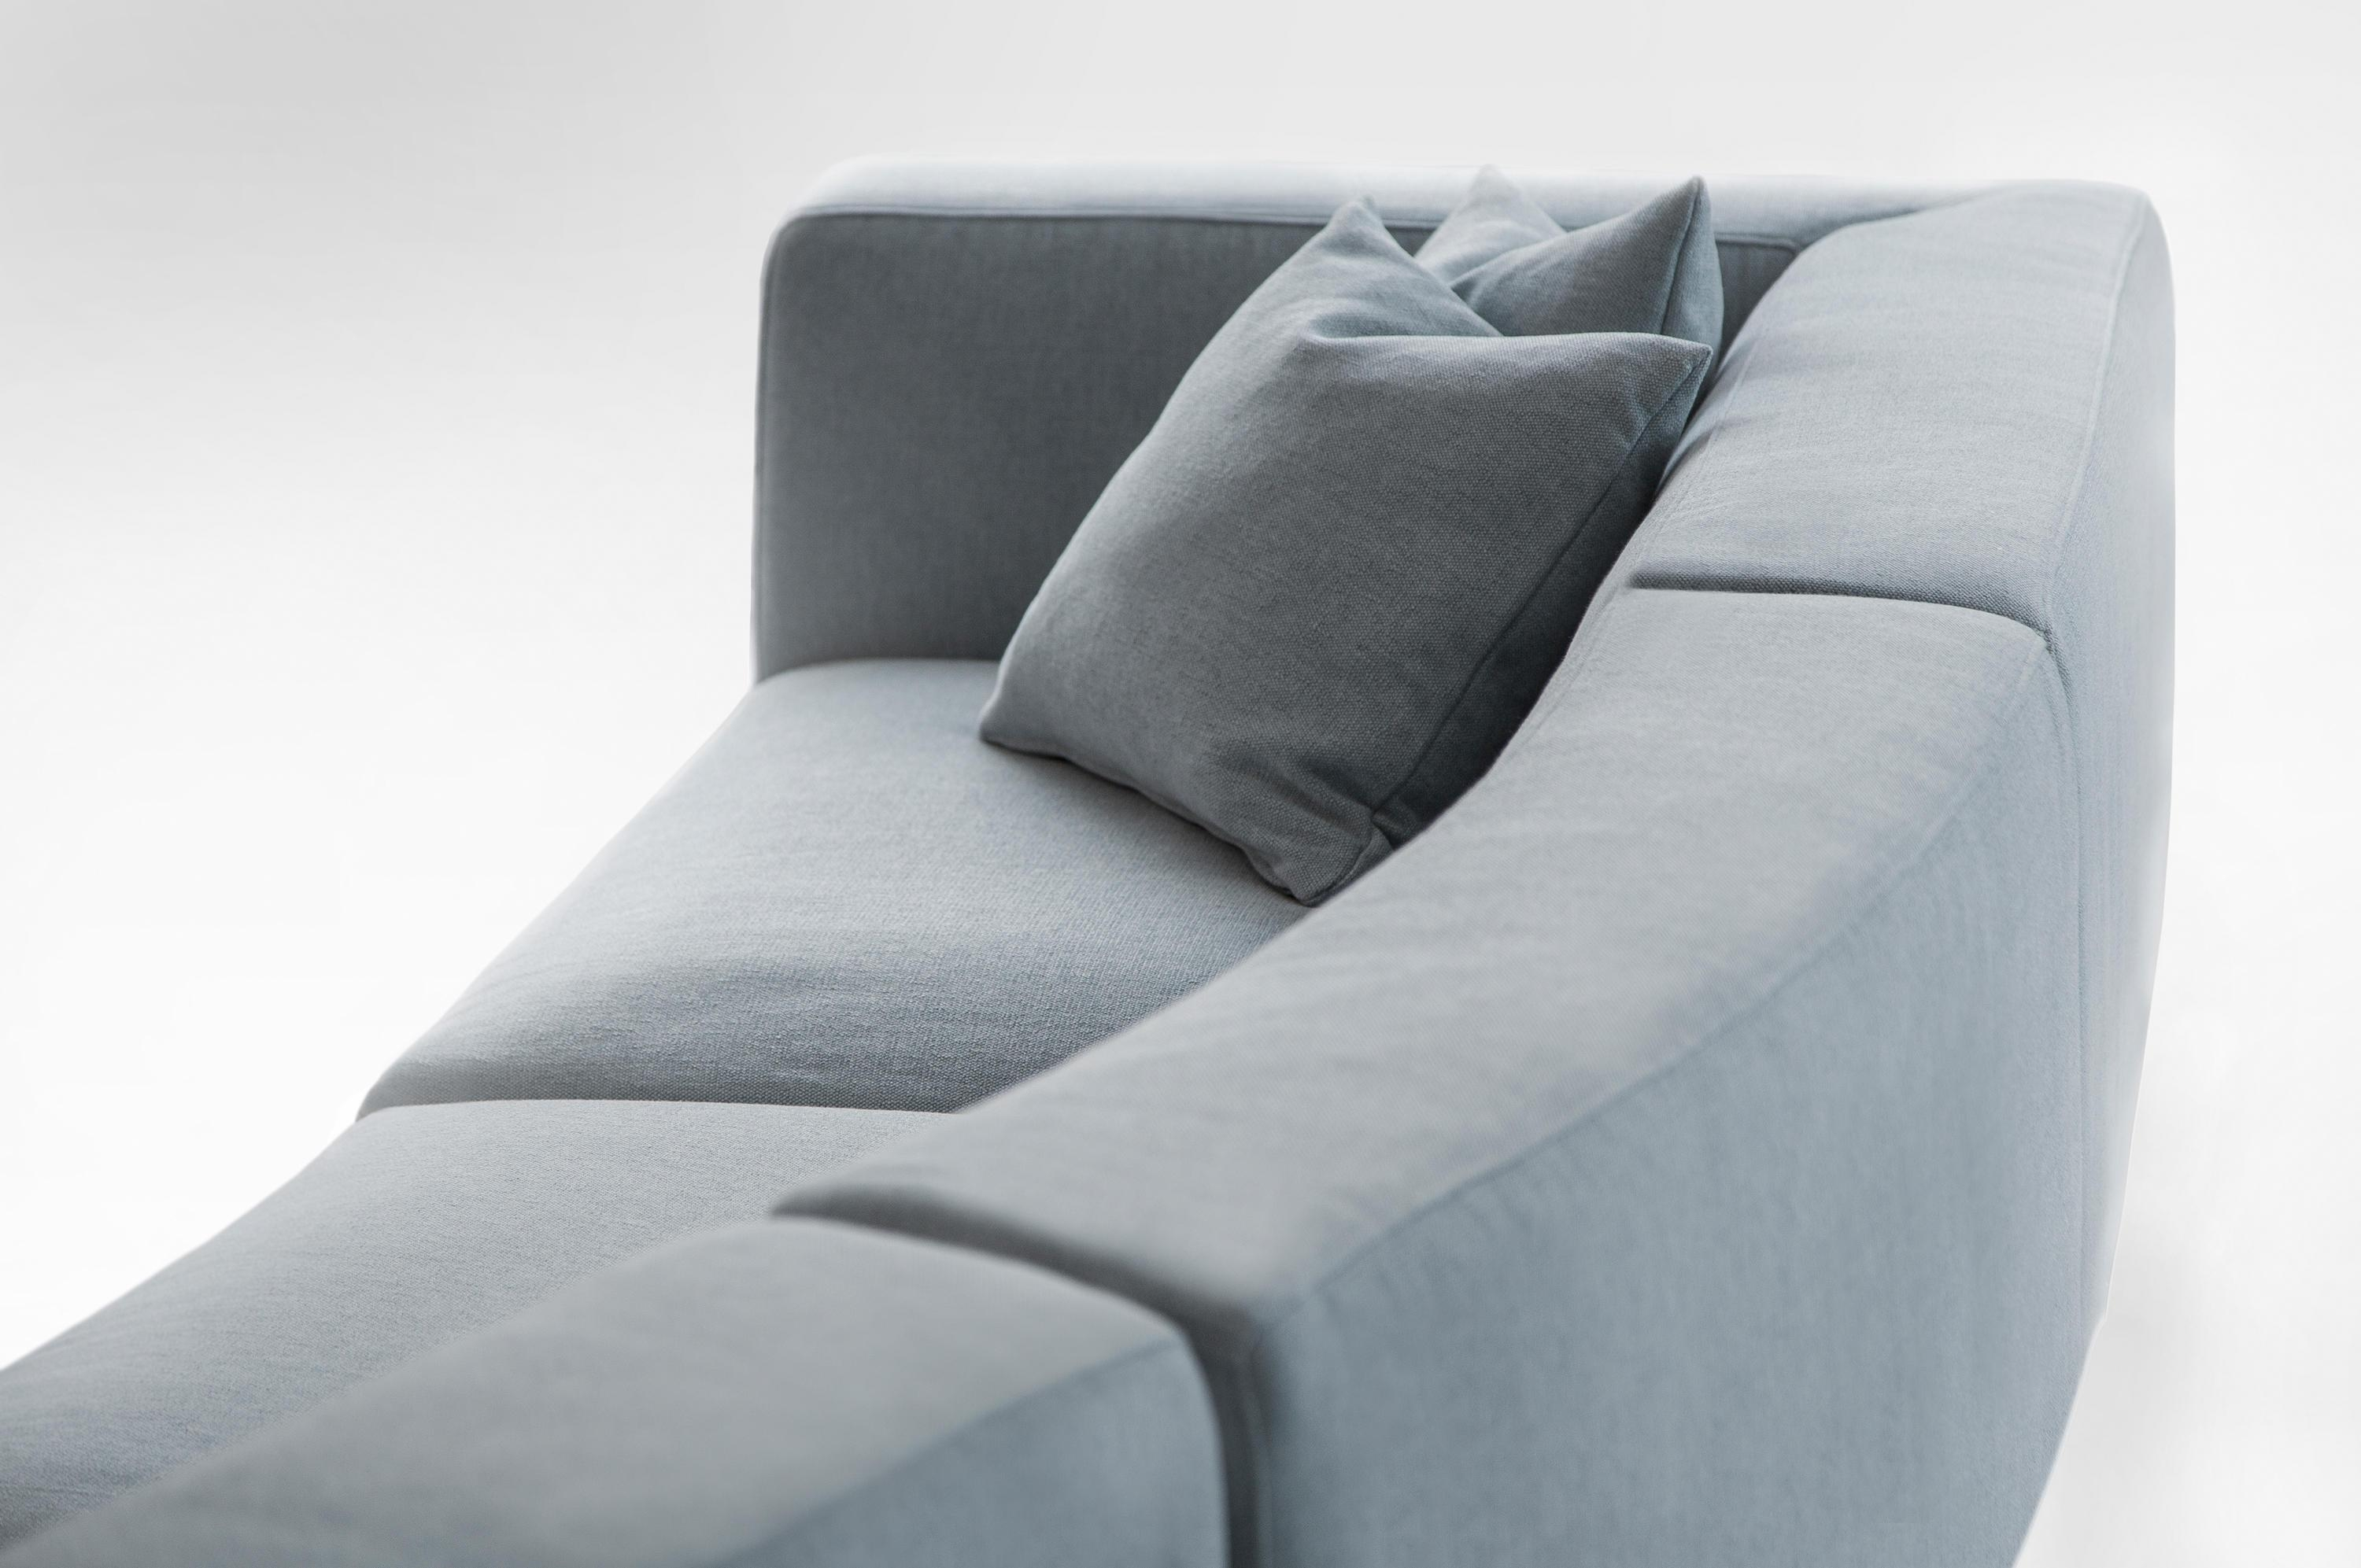 Endless Modular Sofa – Lounge Sofas From Bensen | Architonic With Bensen Sofas (View 14 of 20)